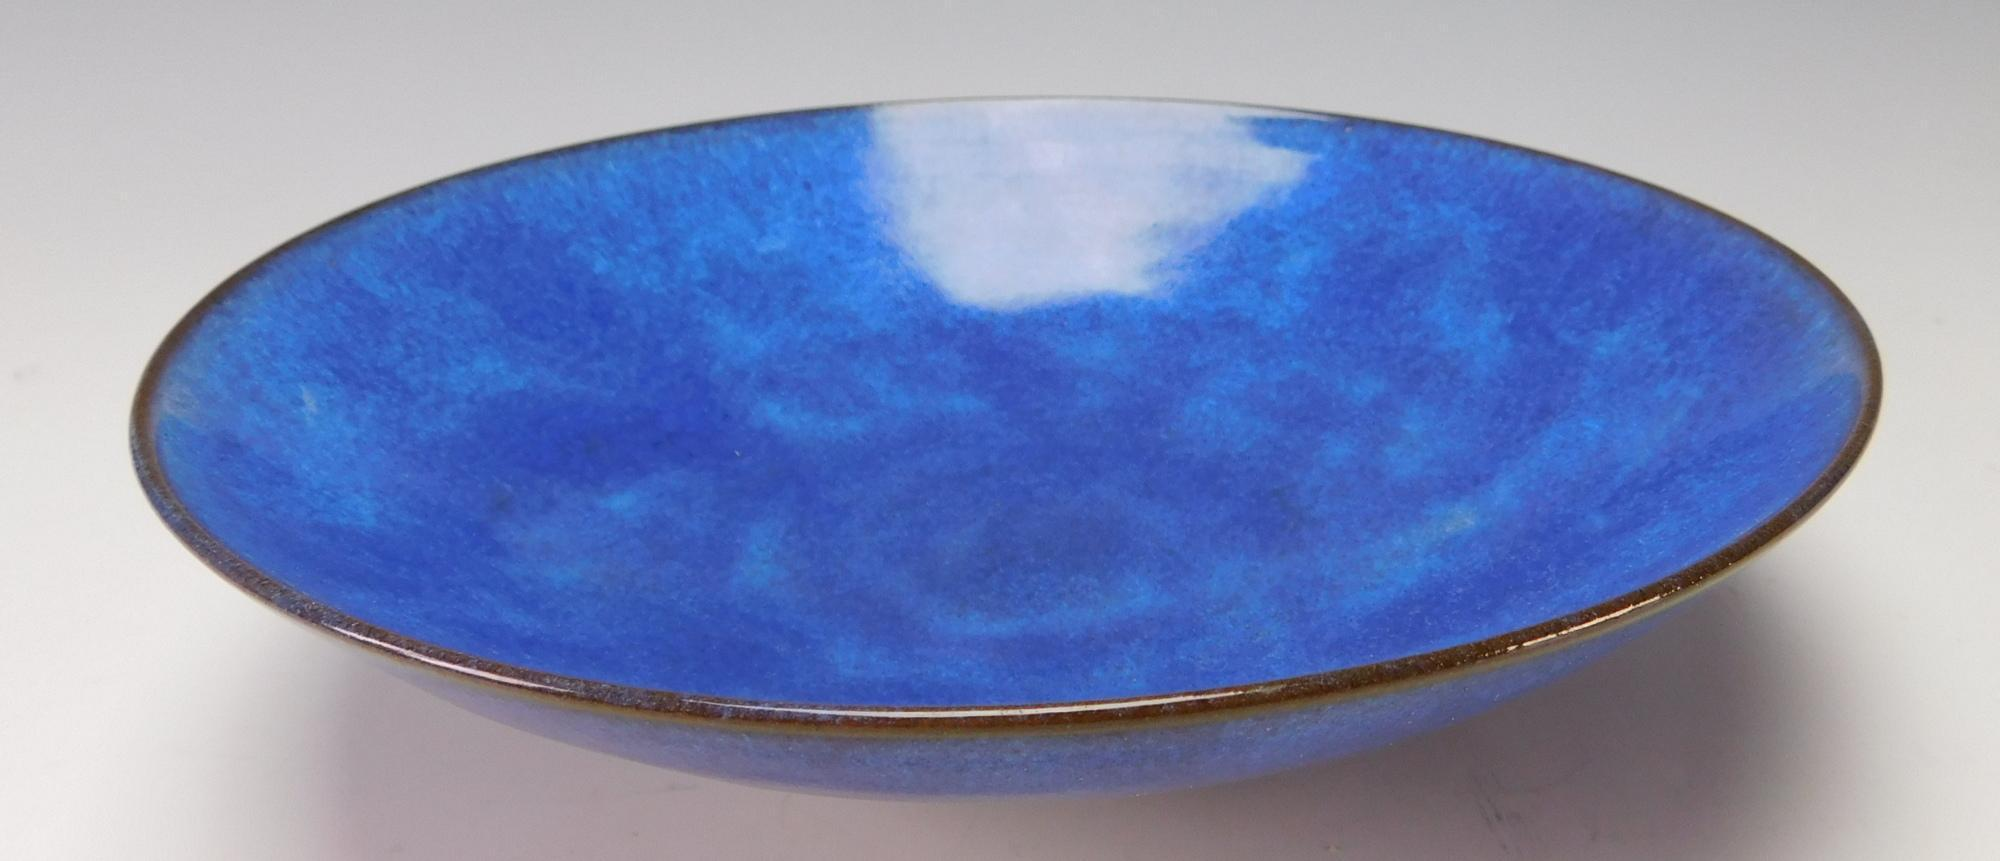 Modernist Gertrude and Otto Natzler Art Pottery Low Bowl Signed